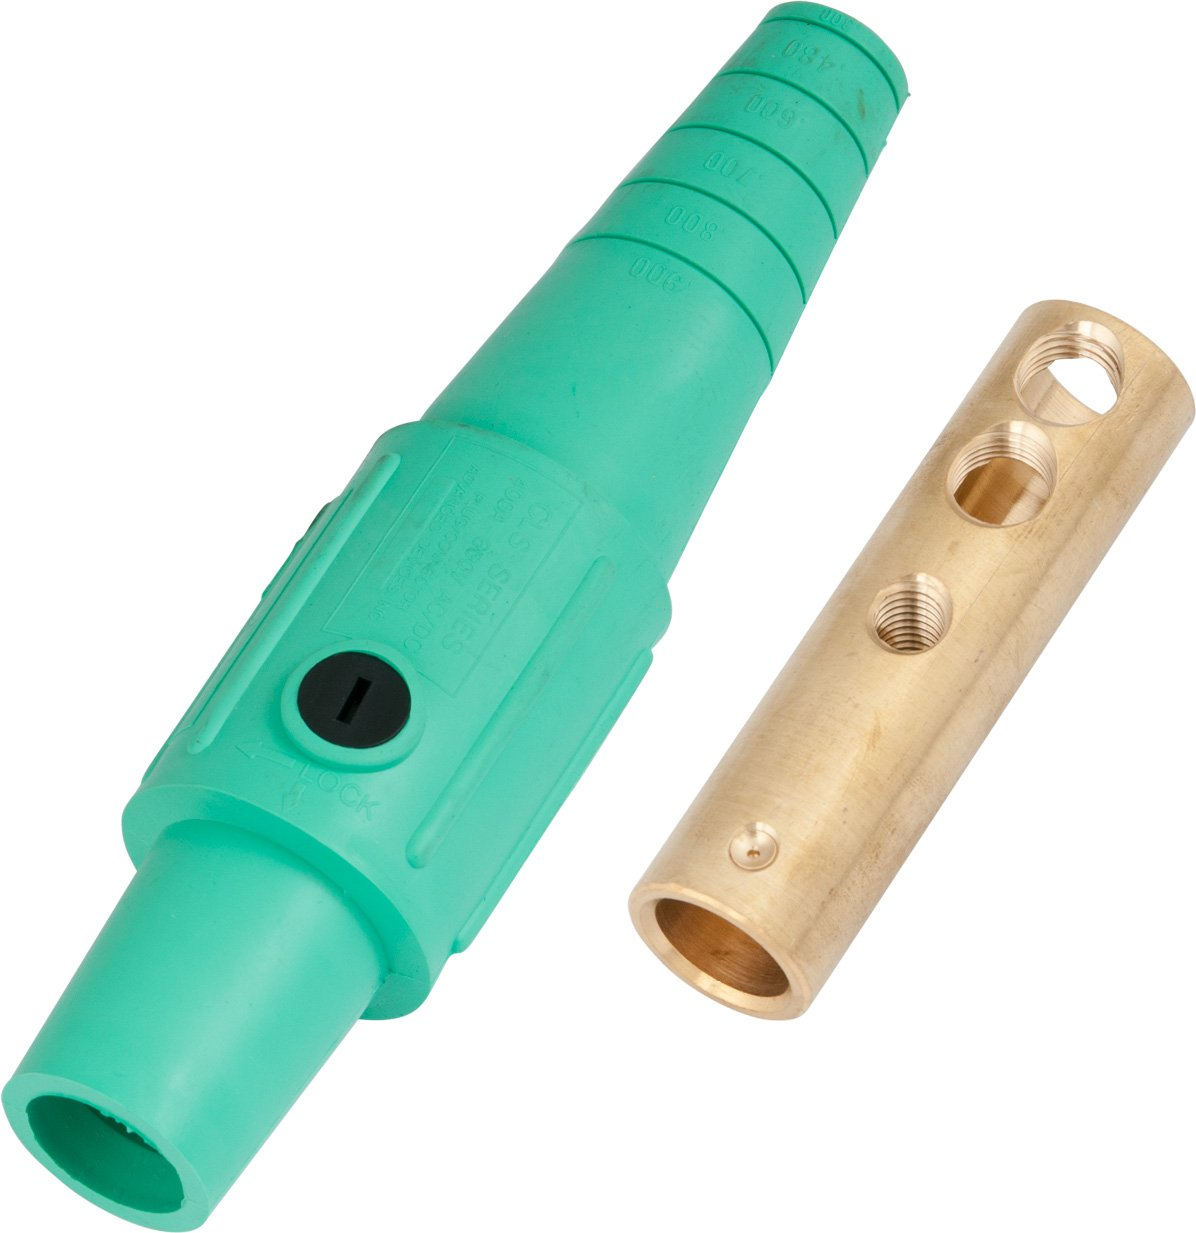 Marinco CLS40FB-E CLS Cam Type, Series 16 Inline, Single Pin Connector, 400 Amp, 600 Volt, 2/0-4/0 AWG, Female - Green (E) Marinco Power Products